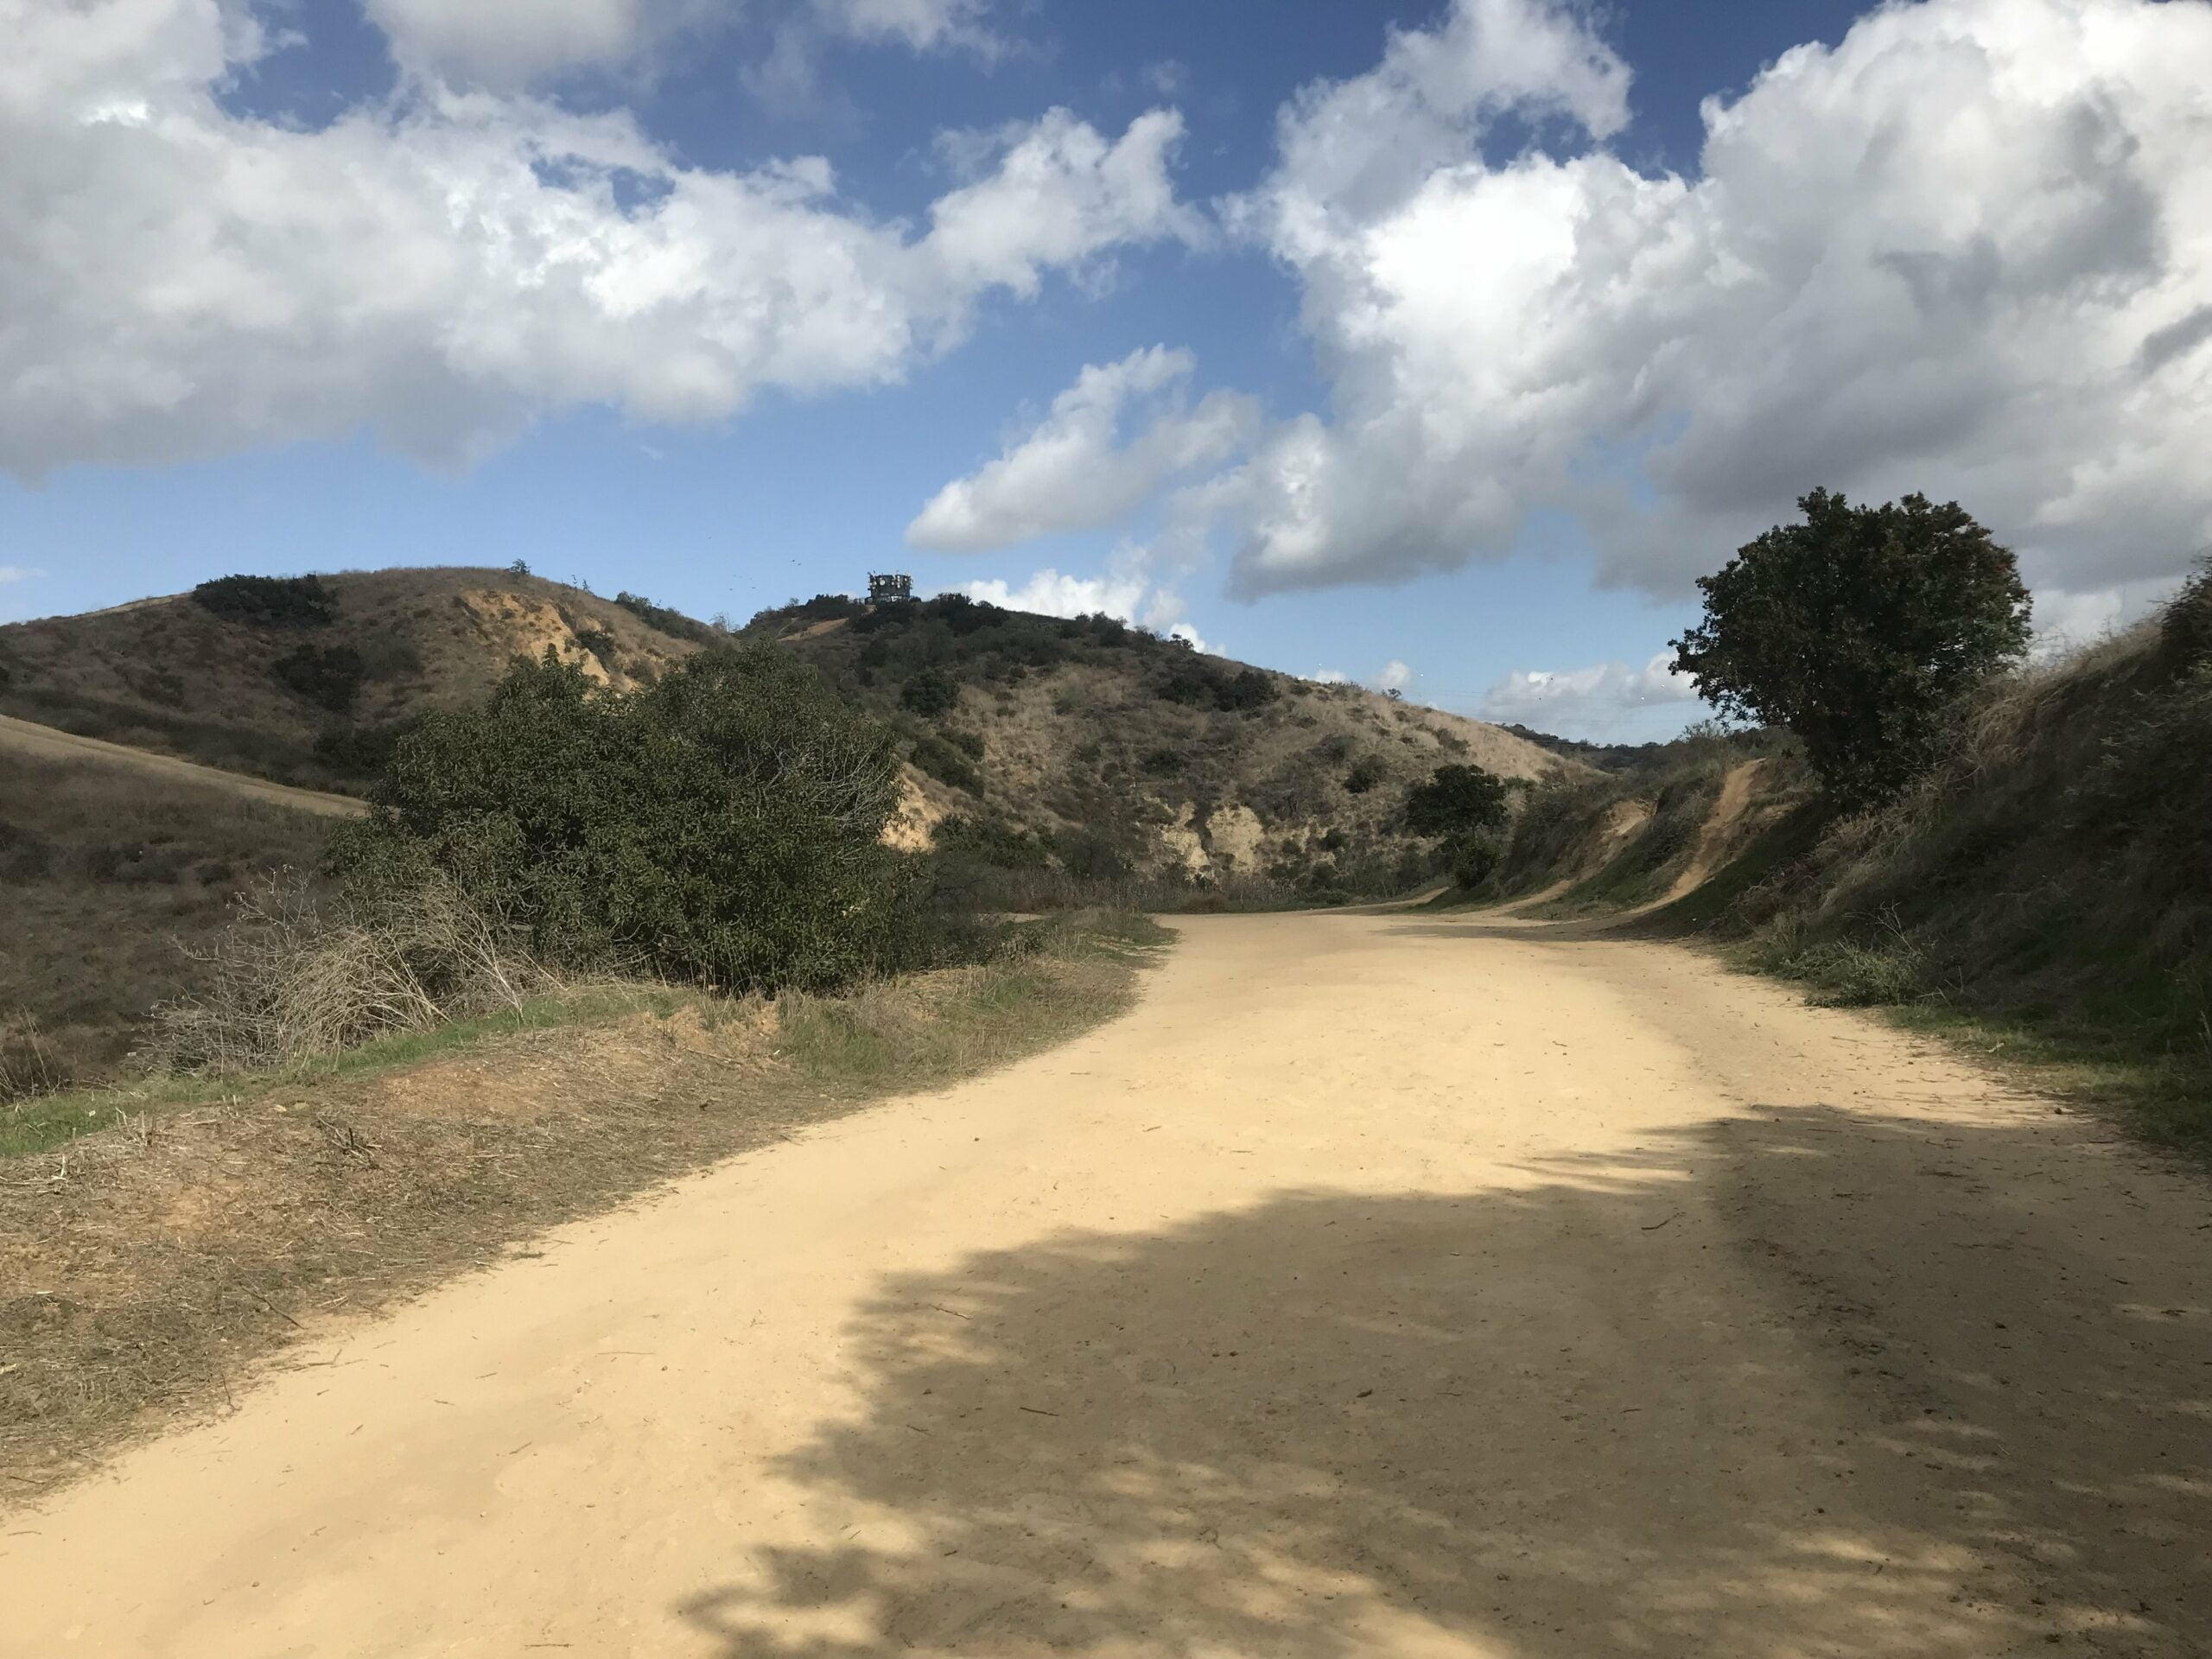 Turnbull Canyon rattlesnake trail